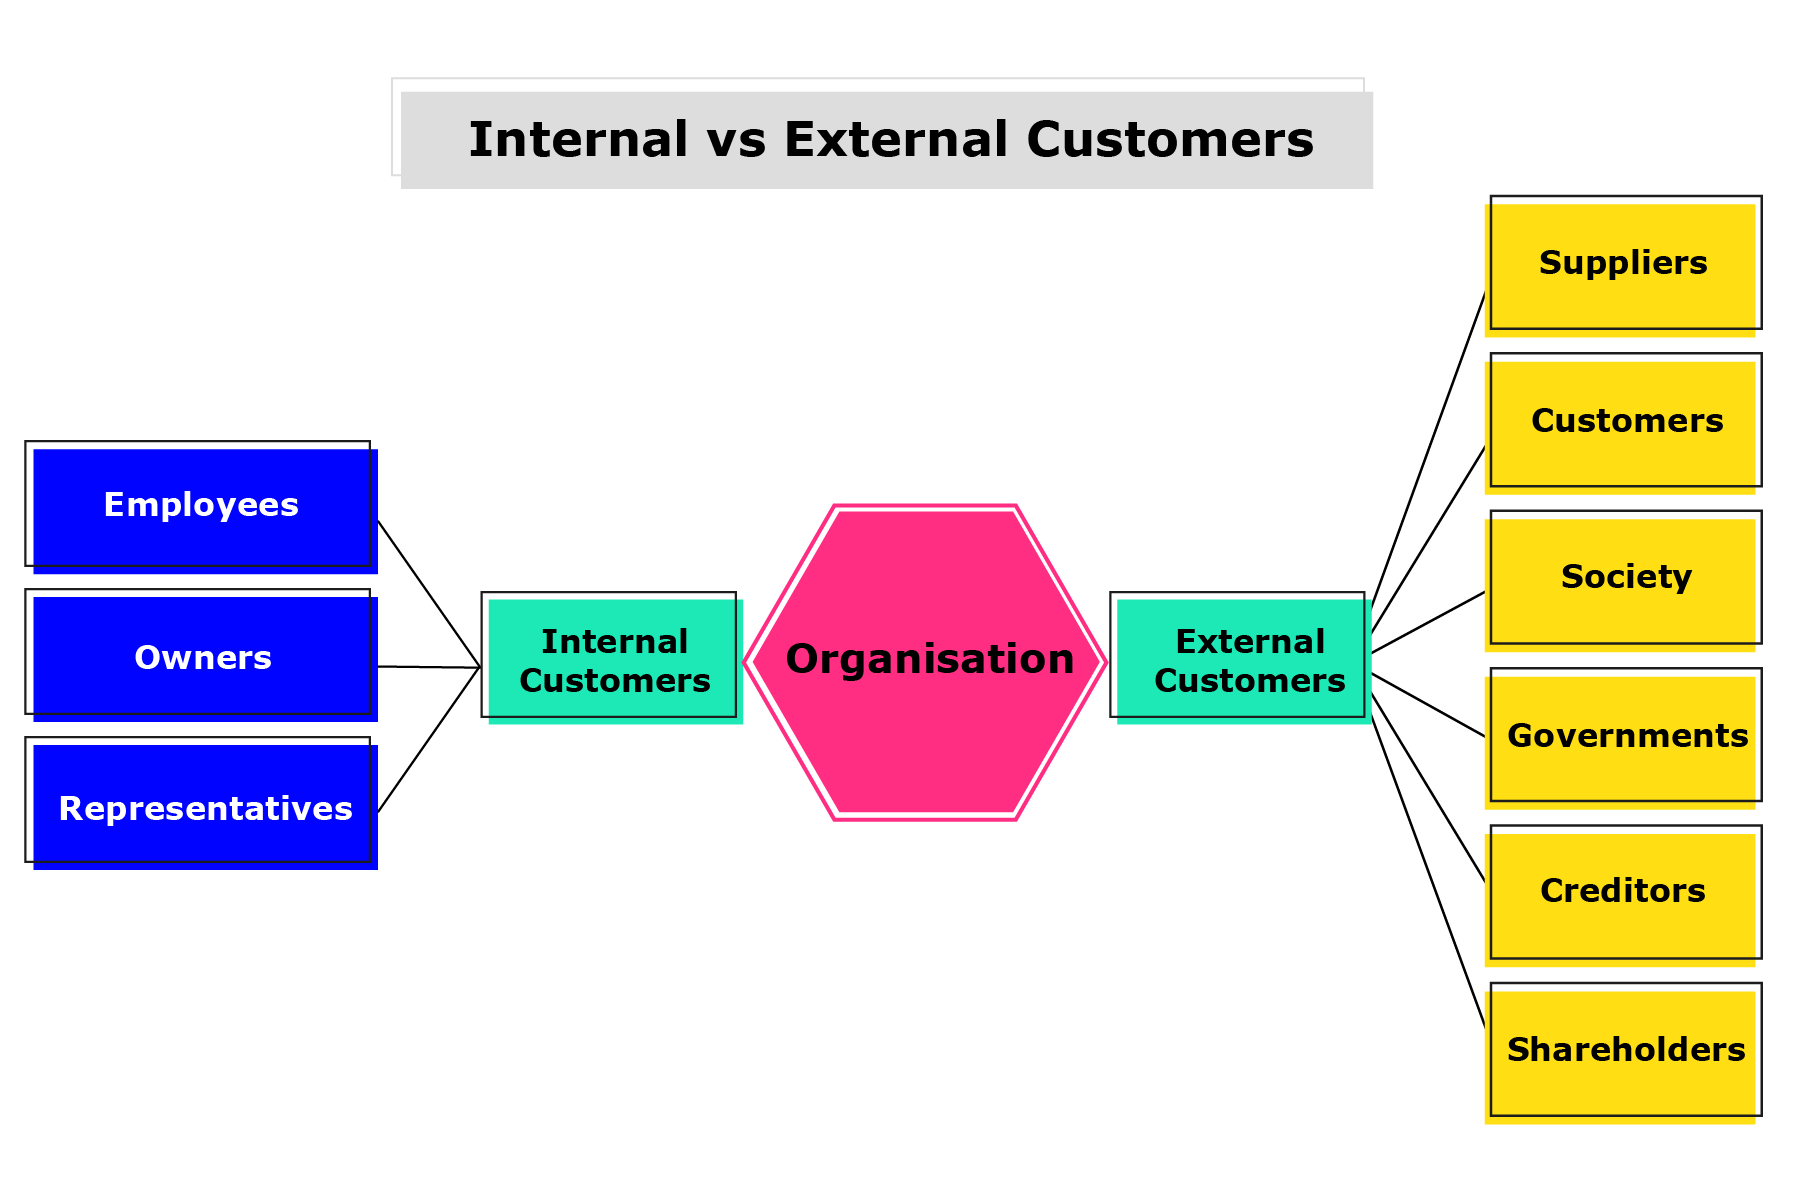 BMC graphic showing internal customers as employees, owners and representatives. External customers are suppliers, customers, society, government, creditors and shareholders.